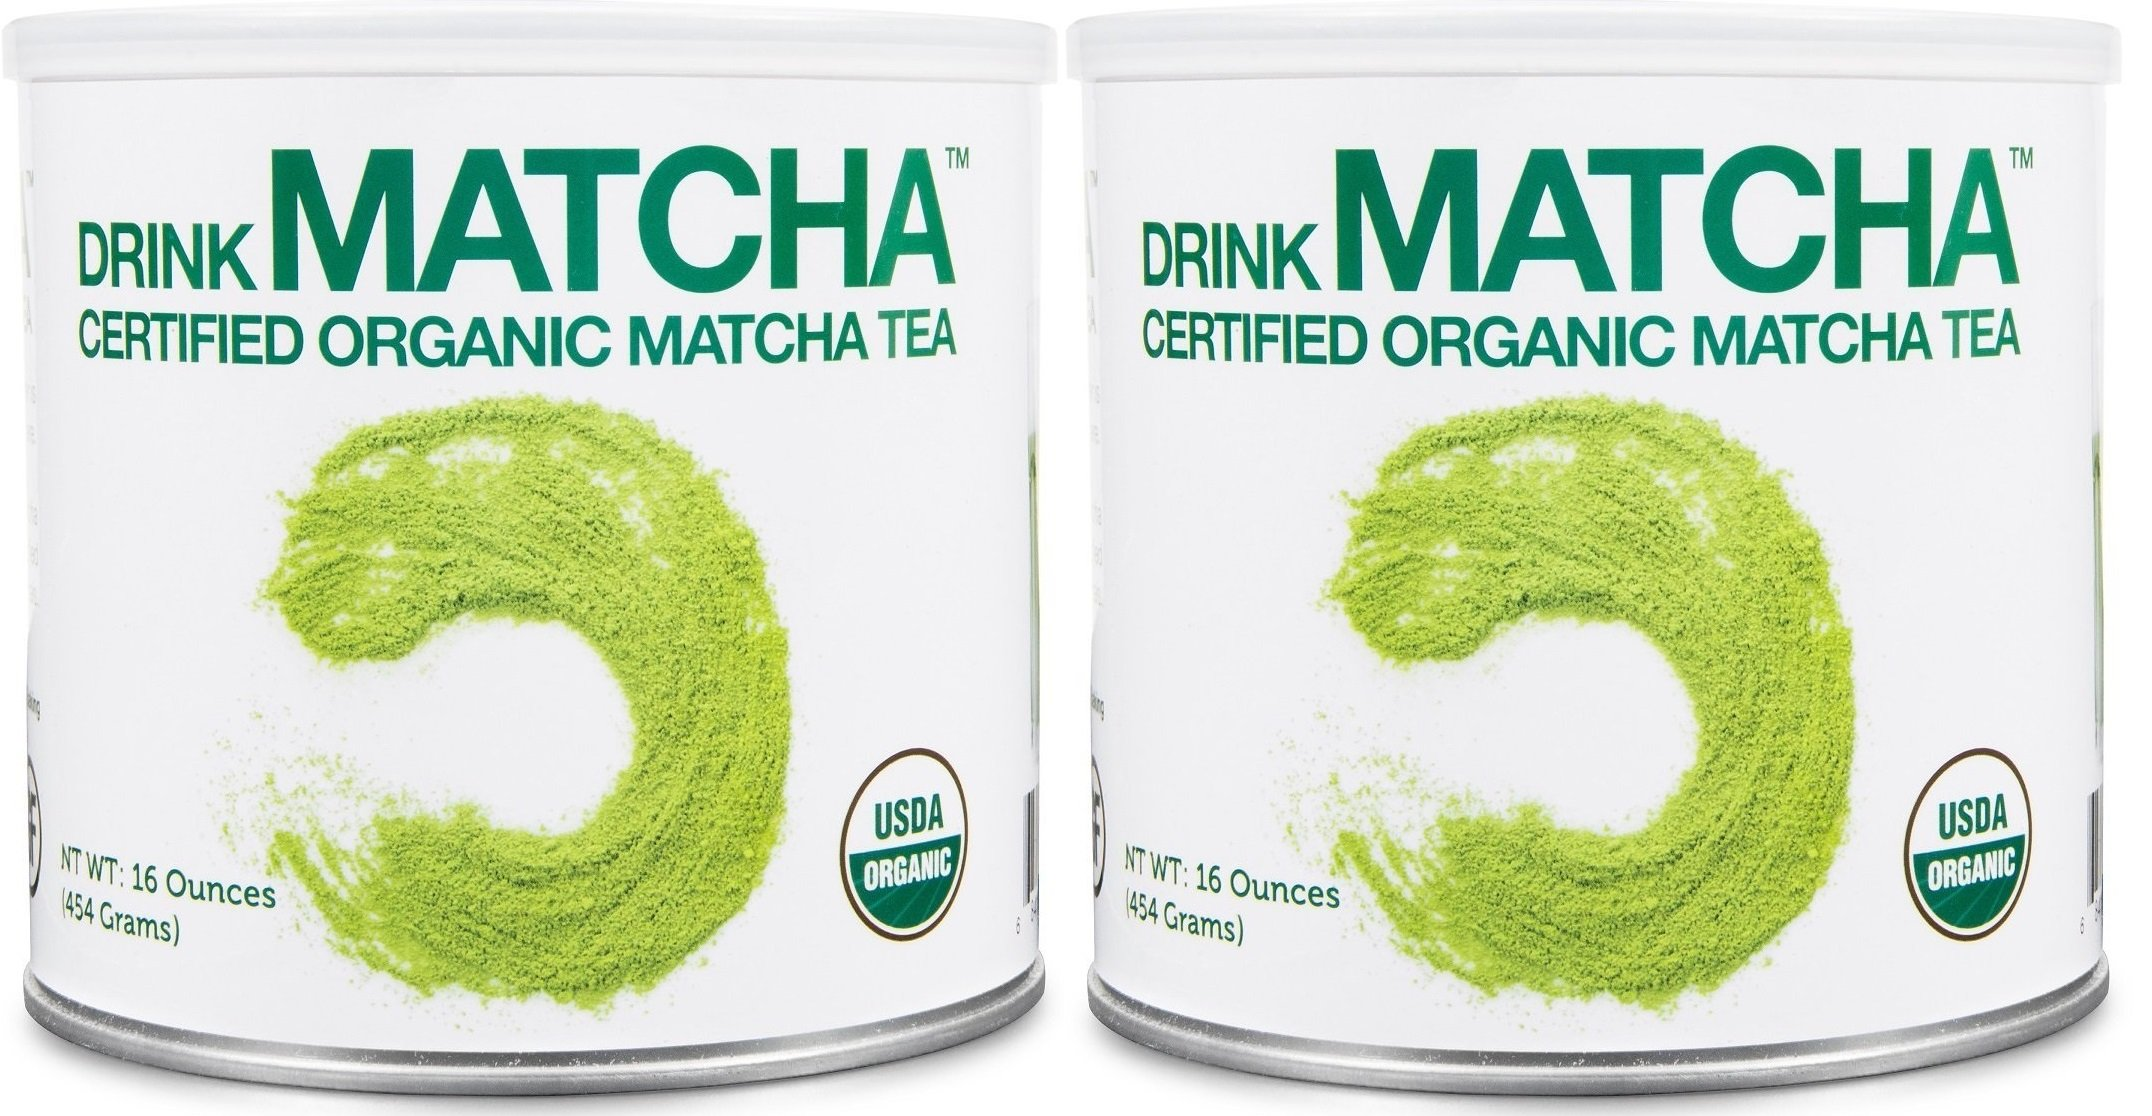 2 Tins of Drink Matcha -1 LB Matcha Green Tea Powder - USDA Organic - 100% Pure Organic Matcha Green tea Powder - Nothing added by MATCHA DNA